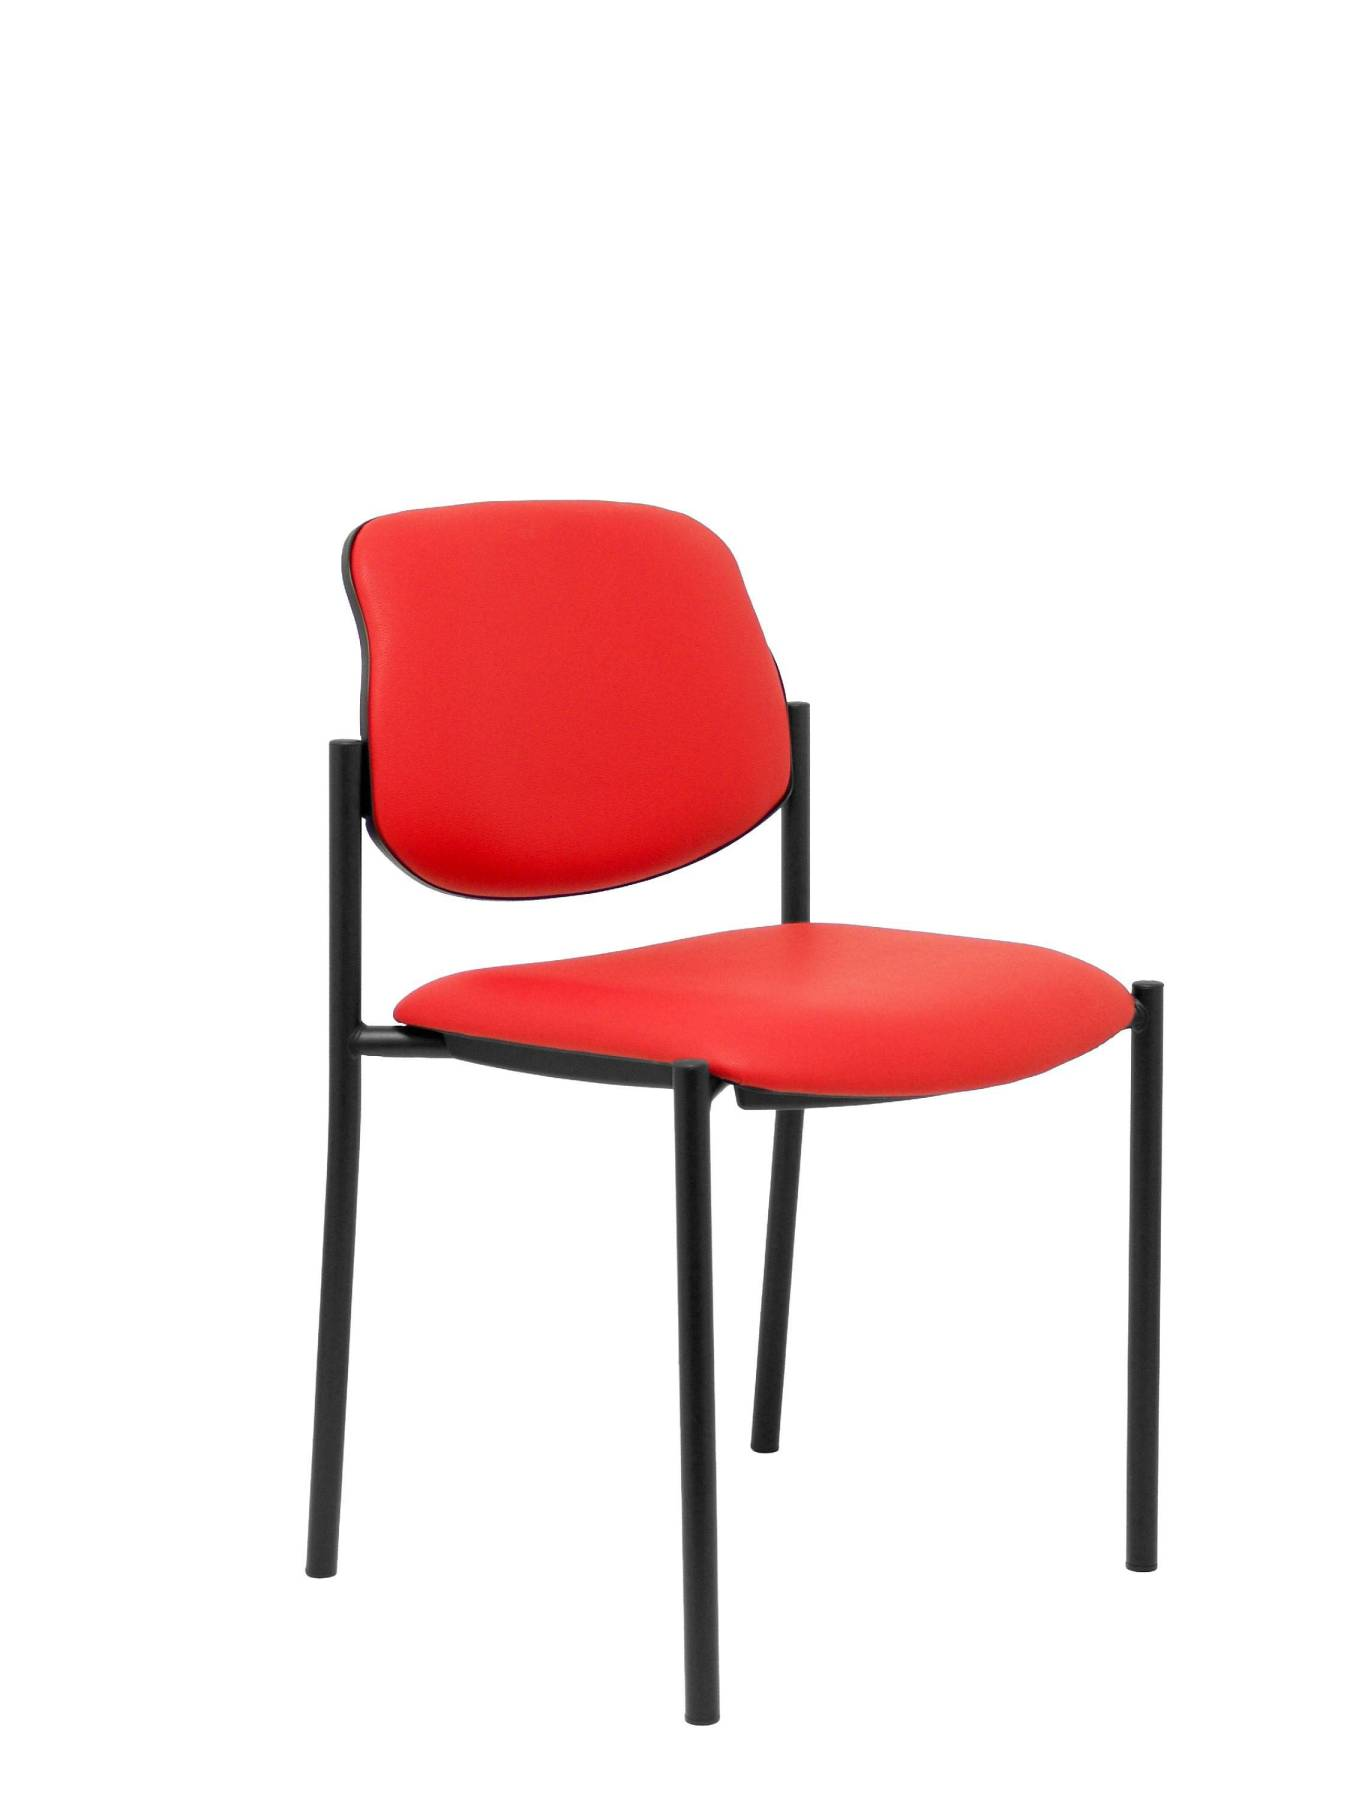 Visitor Chair 4's Topsy And Estructrua Negro-up Seat And Backstop Upholstered In Tissue Similpiel Red Color TAPHOLE AND